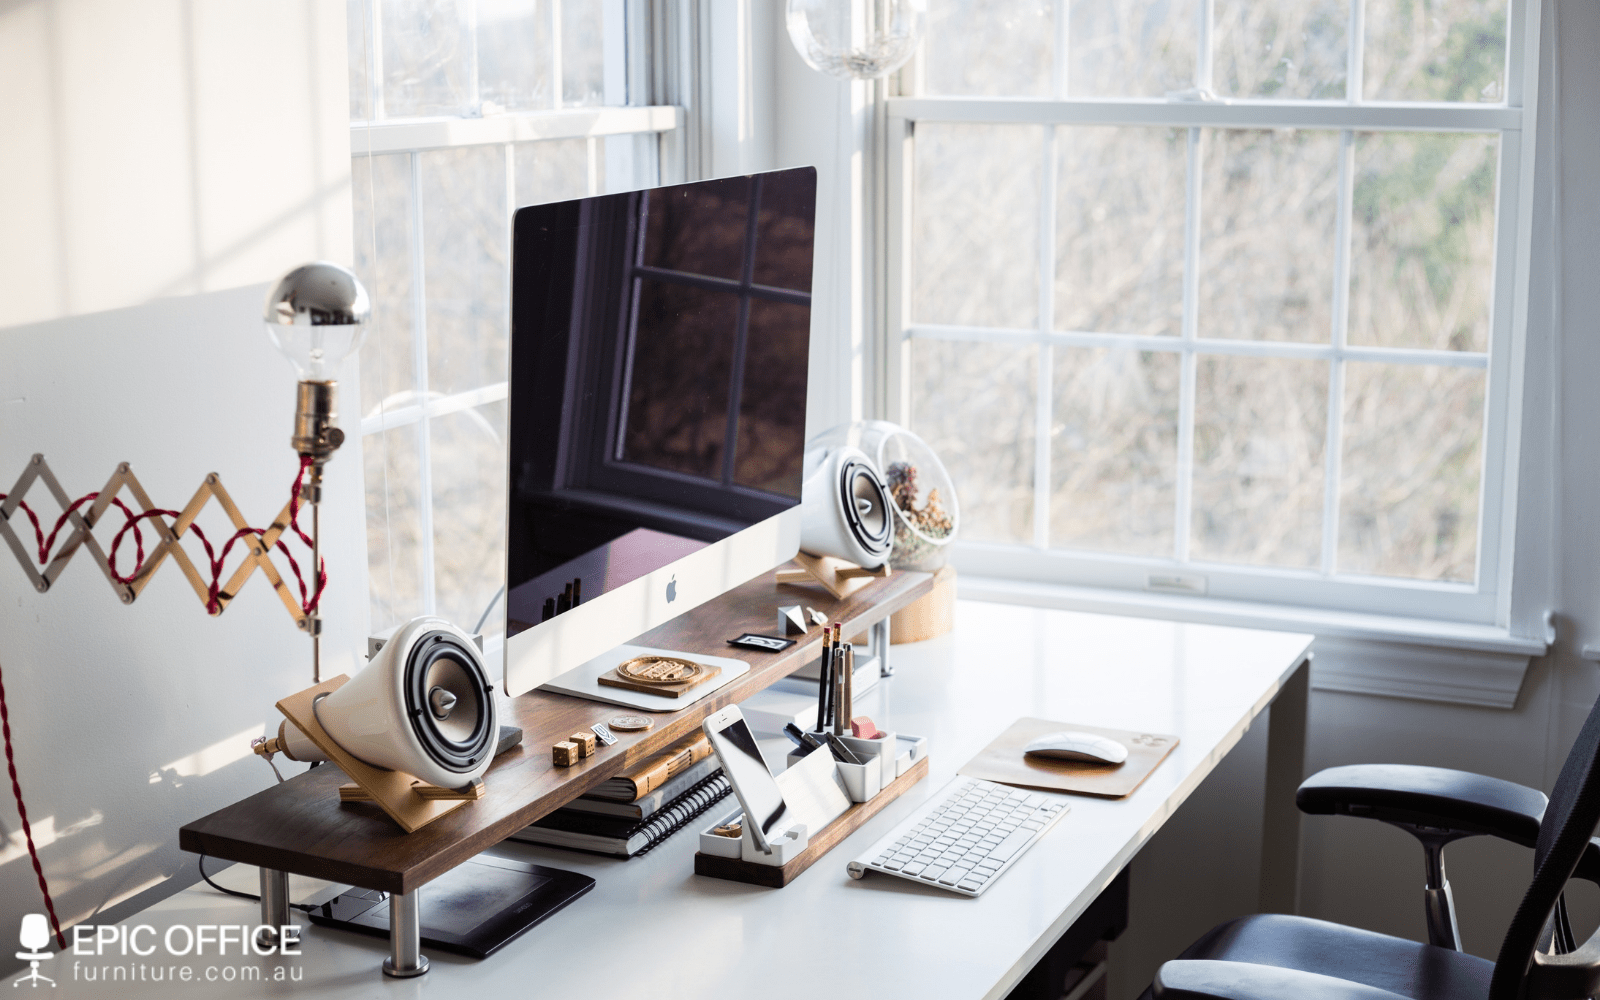 How to Spruce up Your Office with Office Accessories